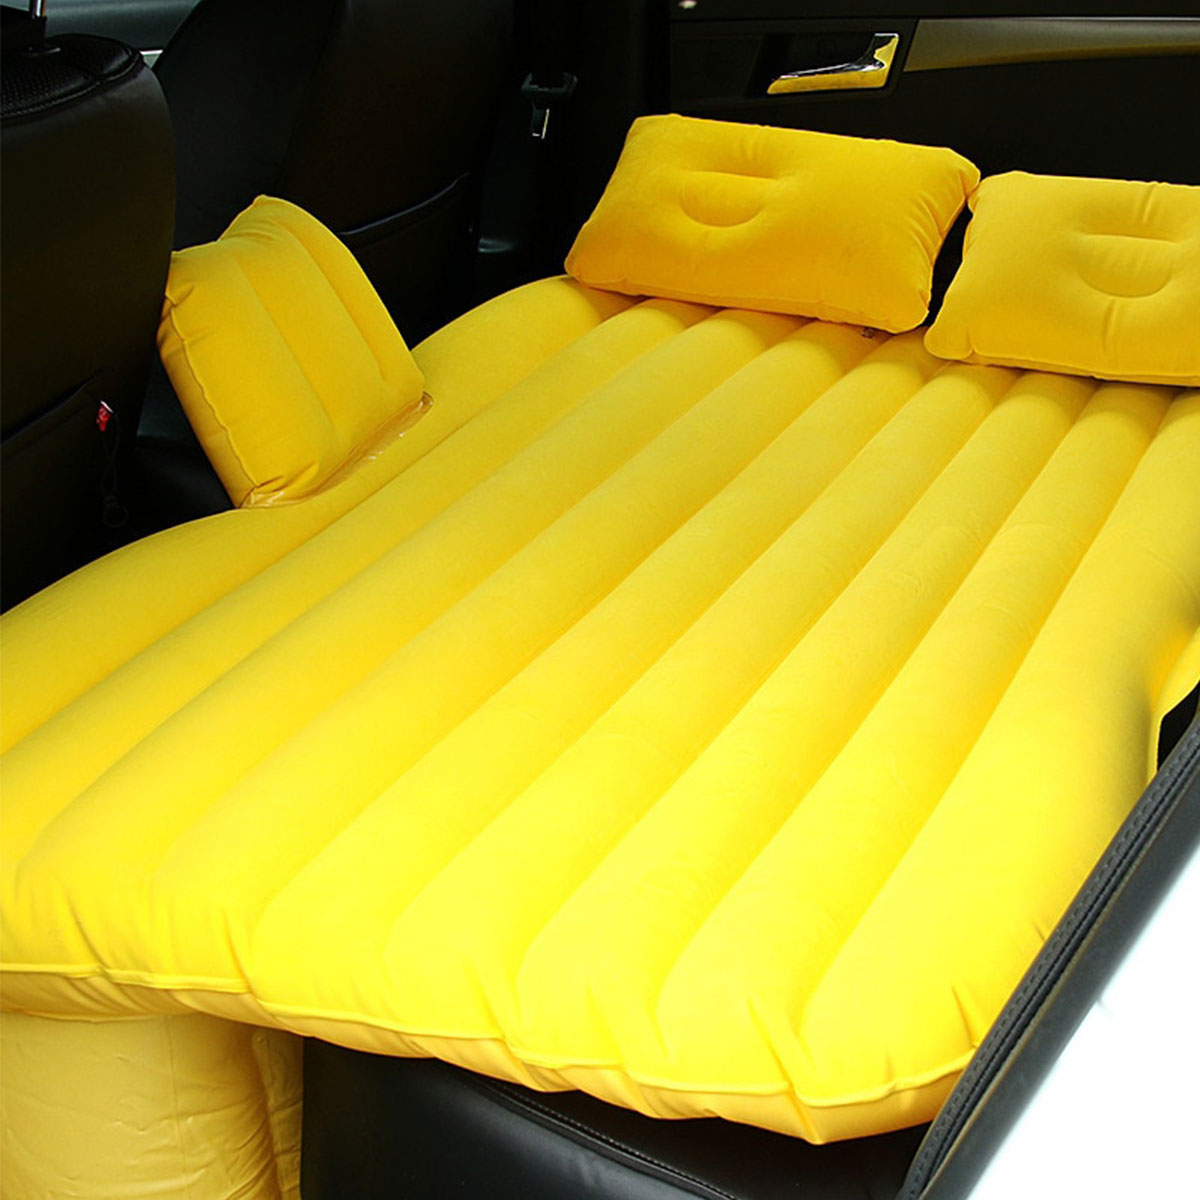 Lightweight & Portable Inflatable Car Mattress With Child Protector